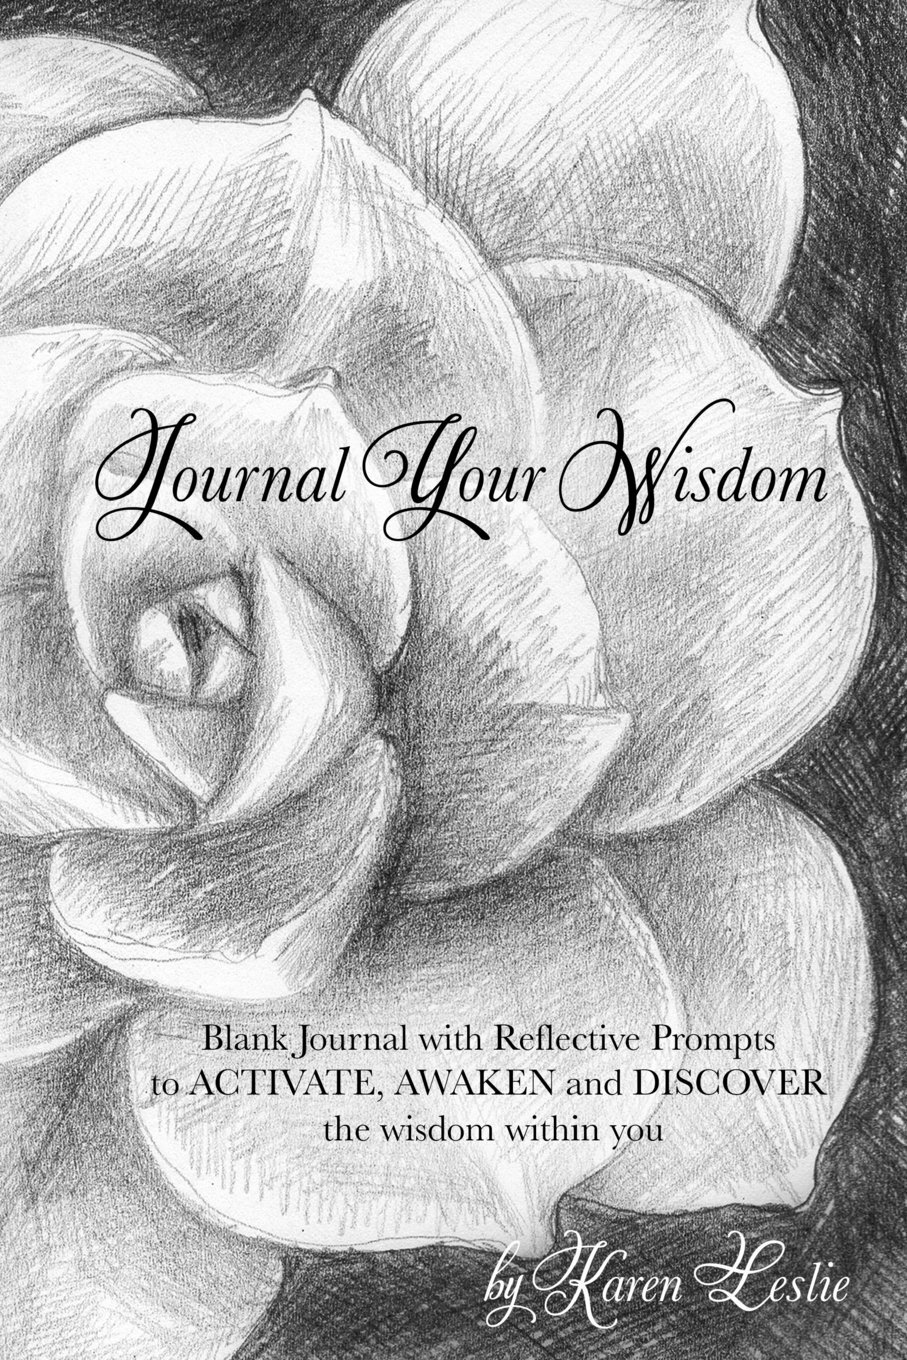 Journal Your Wisdom: by Karen Leslie